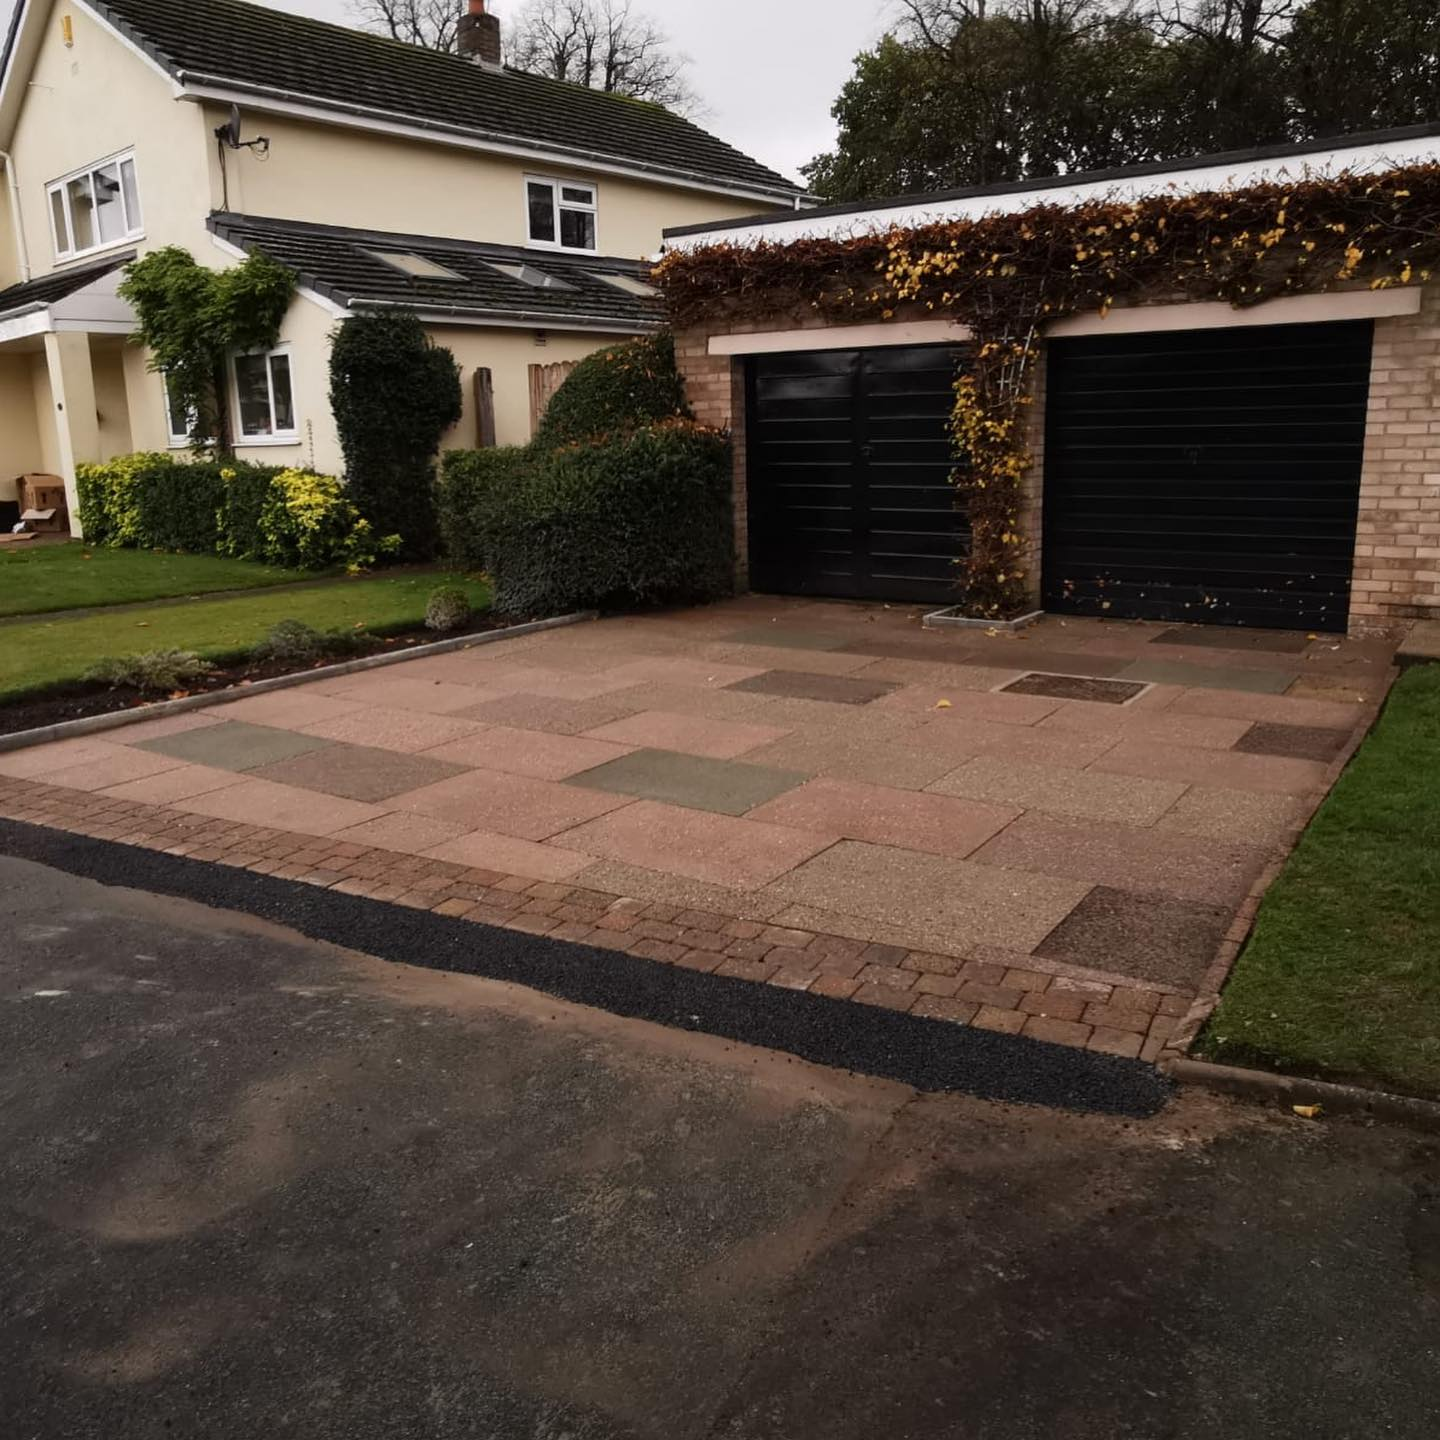 Driveway in Knutsford